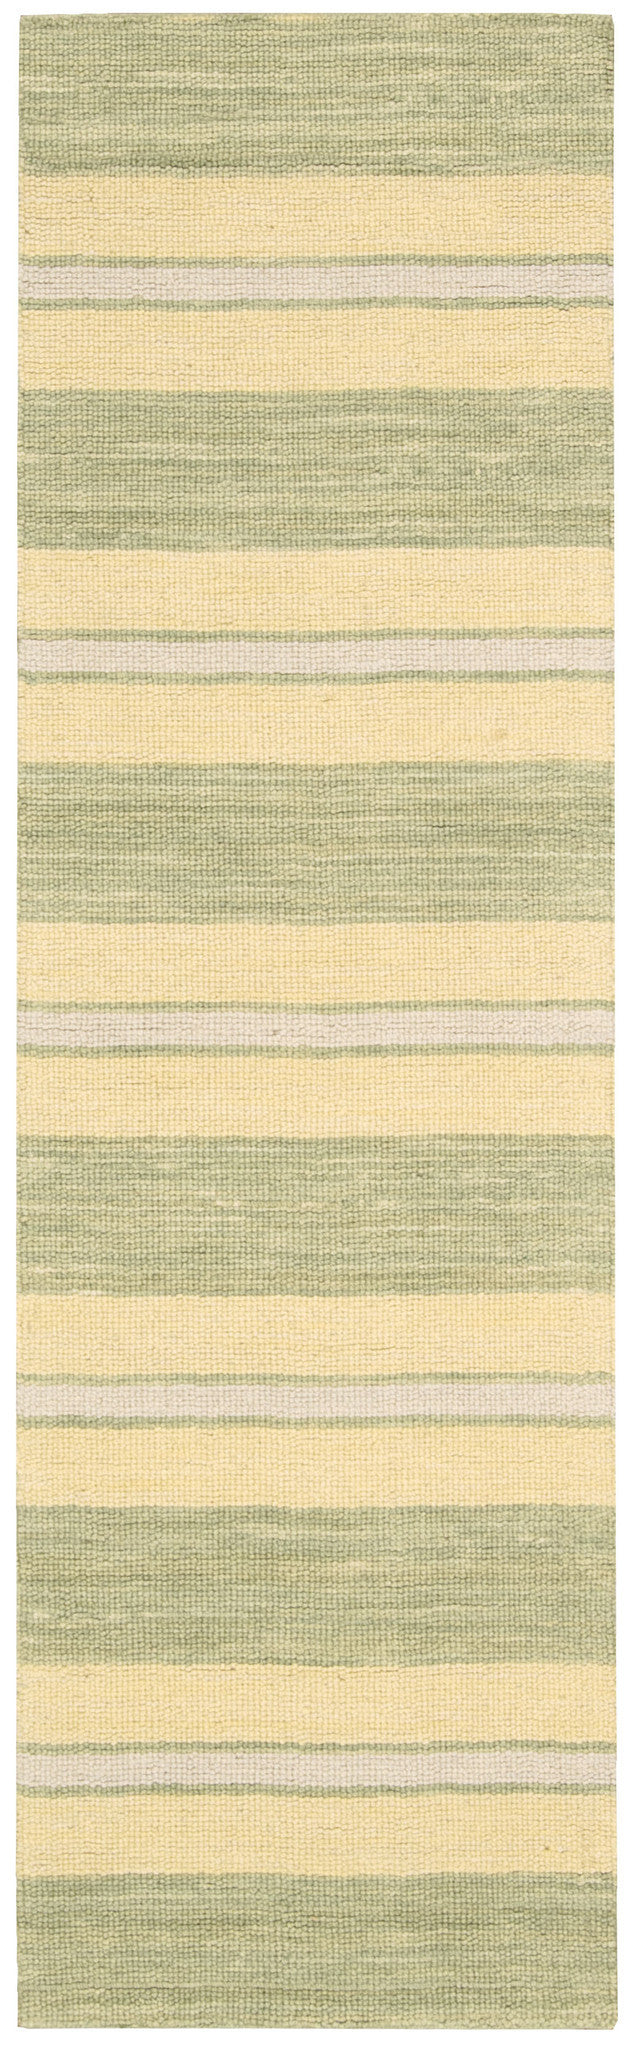 Barclay Butera Oxford Chesapeake Area Rug By Nourison OXFD4 CHESA (Runner) | BOGO USA